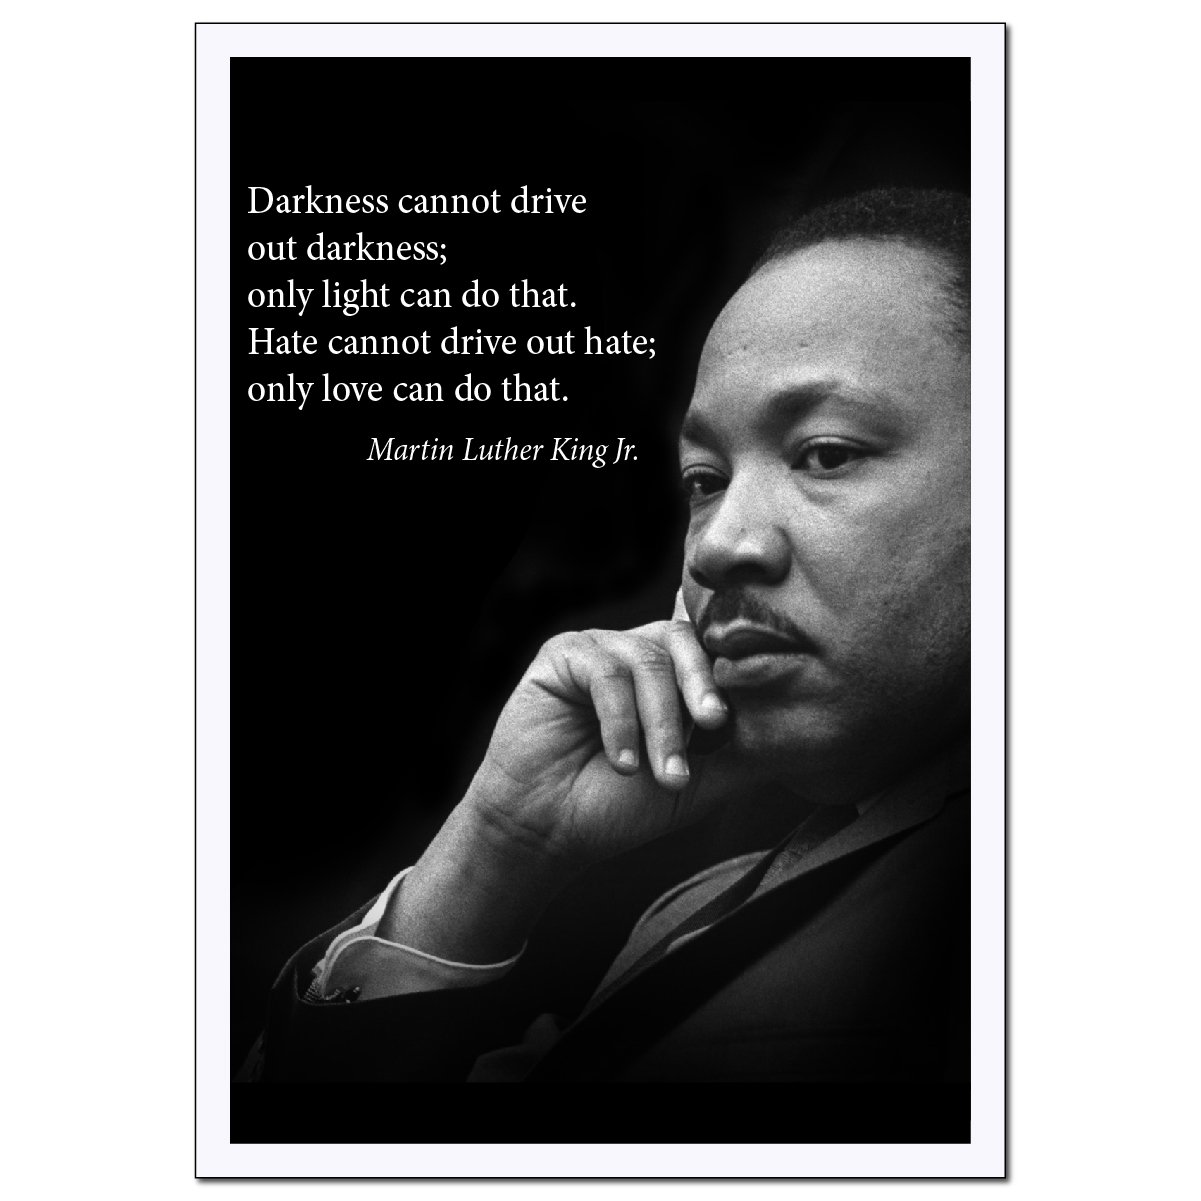 Young N Refined Martin Luther King Jr Poster Famous Inspirational Quote Large Banner Darkness Cannot Drive Out Darkness Only Light Can Do That For